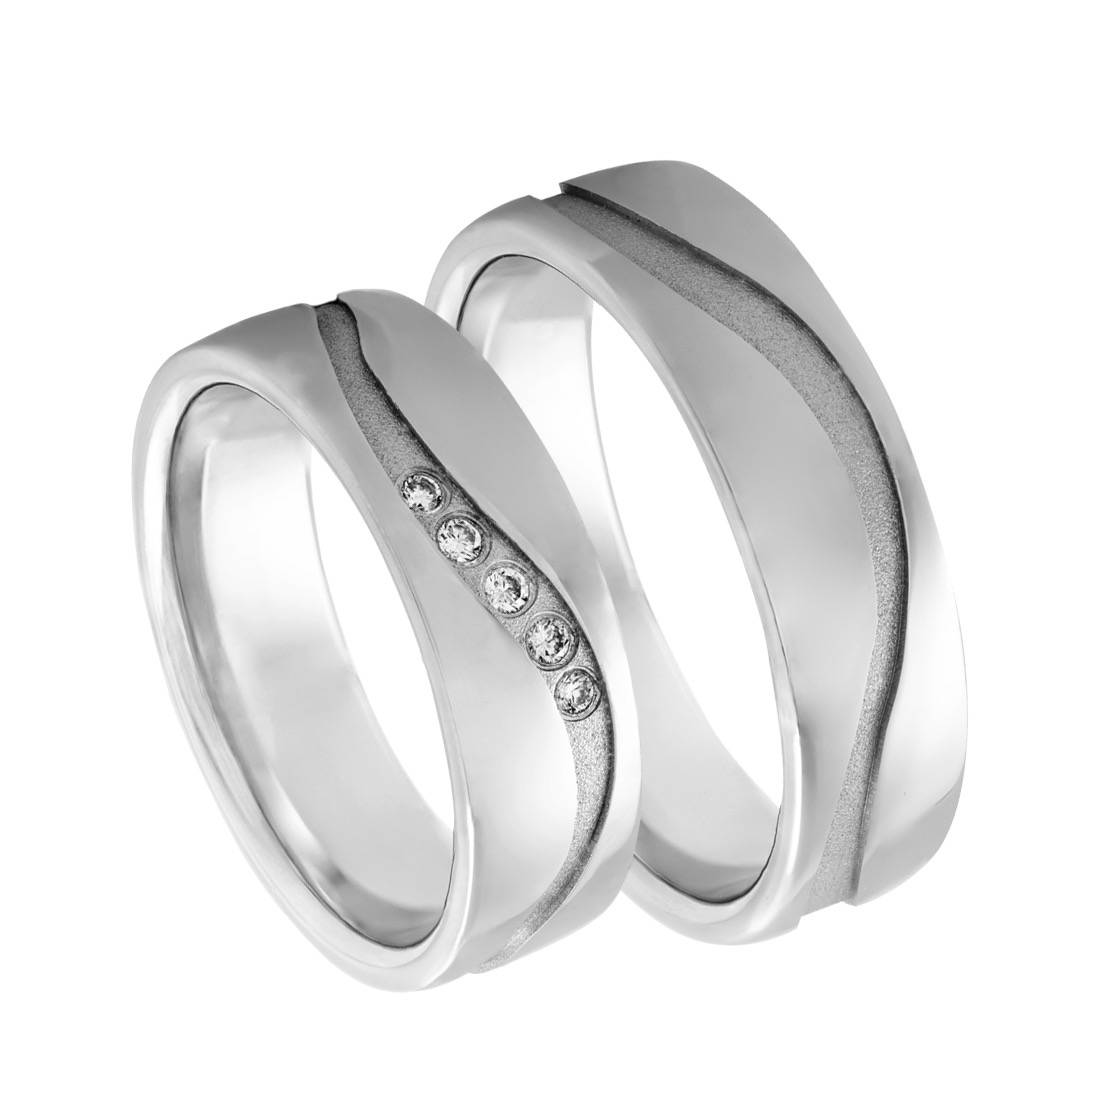 Juwelier Jan Maes - Trouwringen - Verlovingsringen - Juwelen - House of Weddings - 8